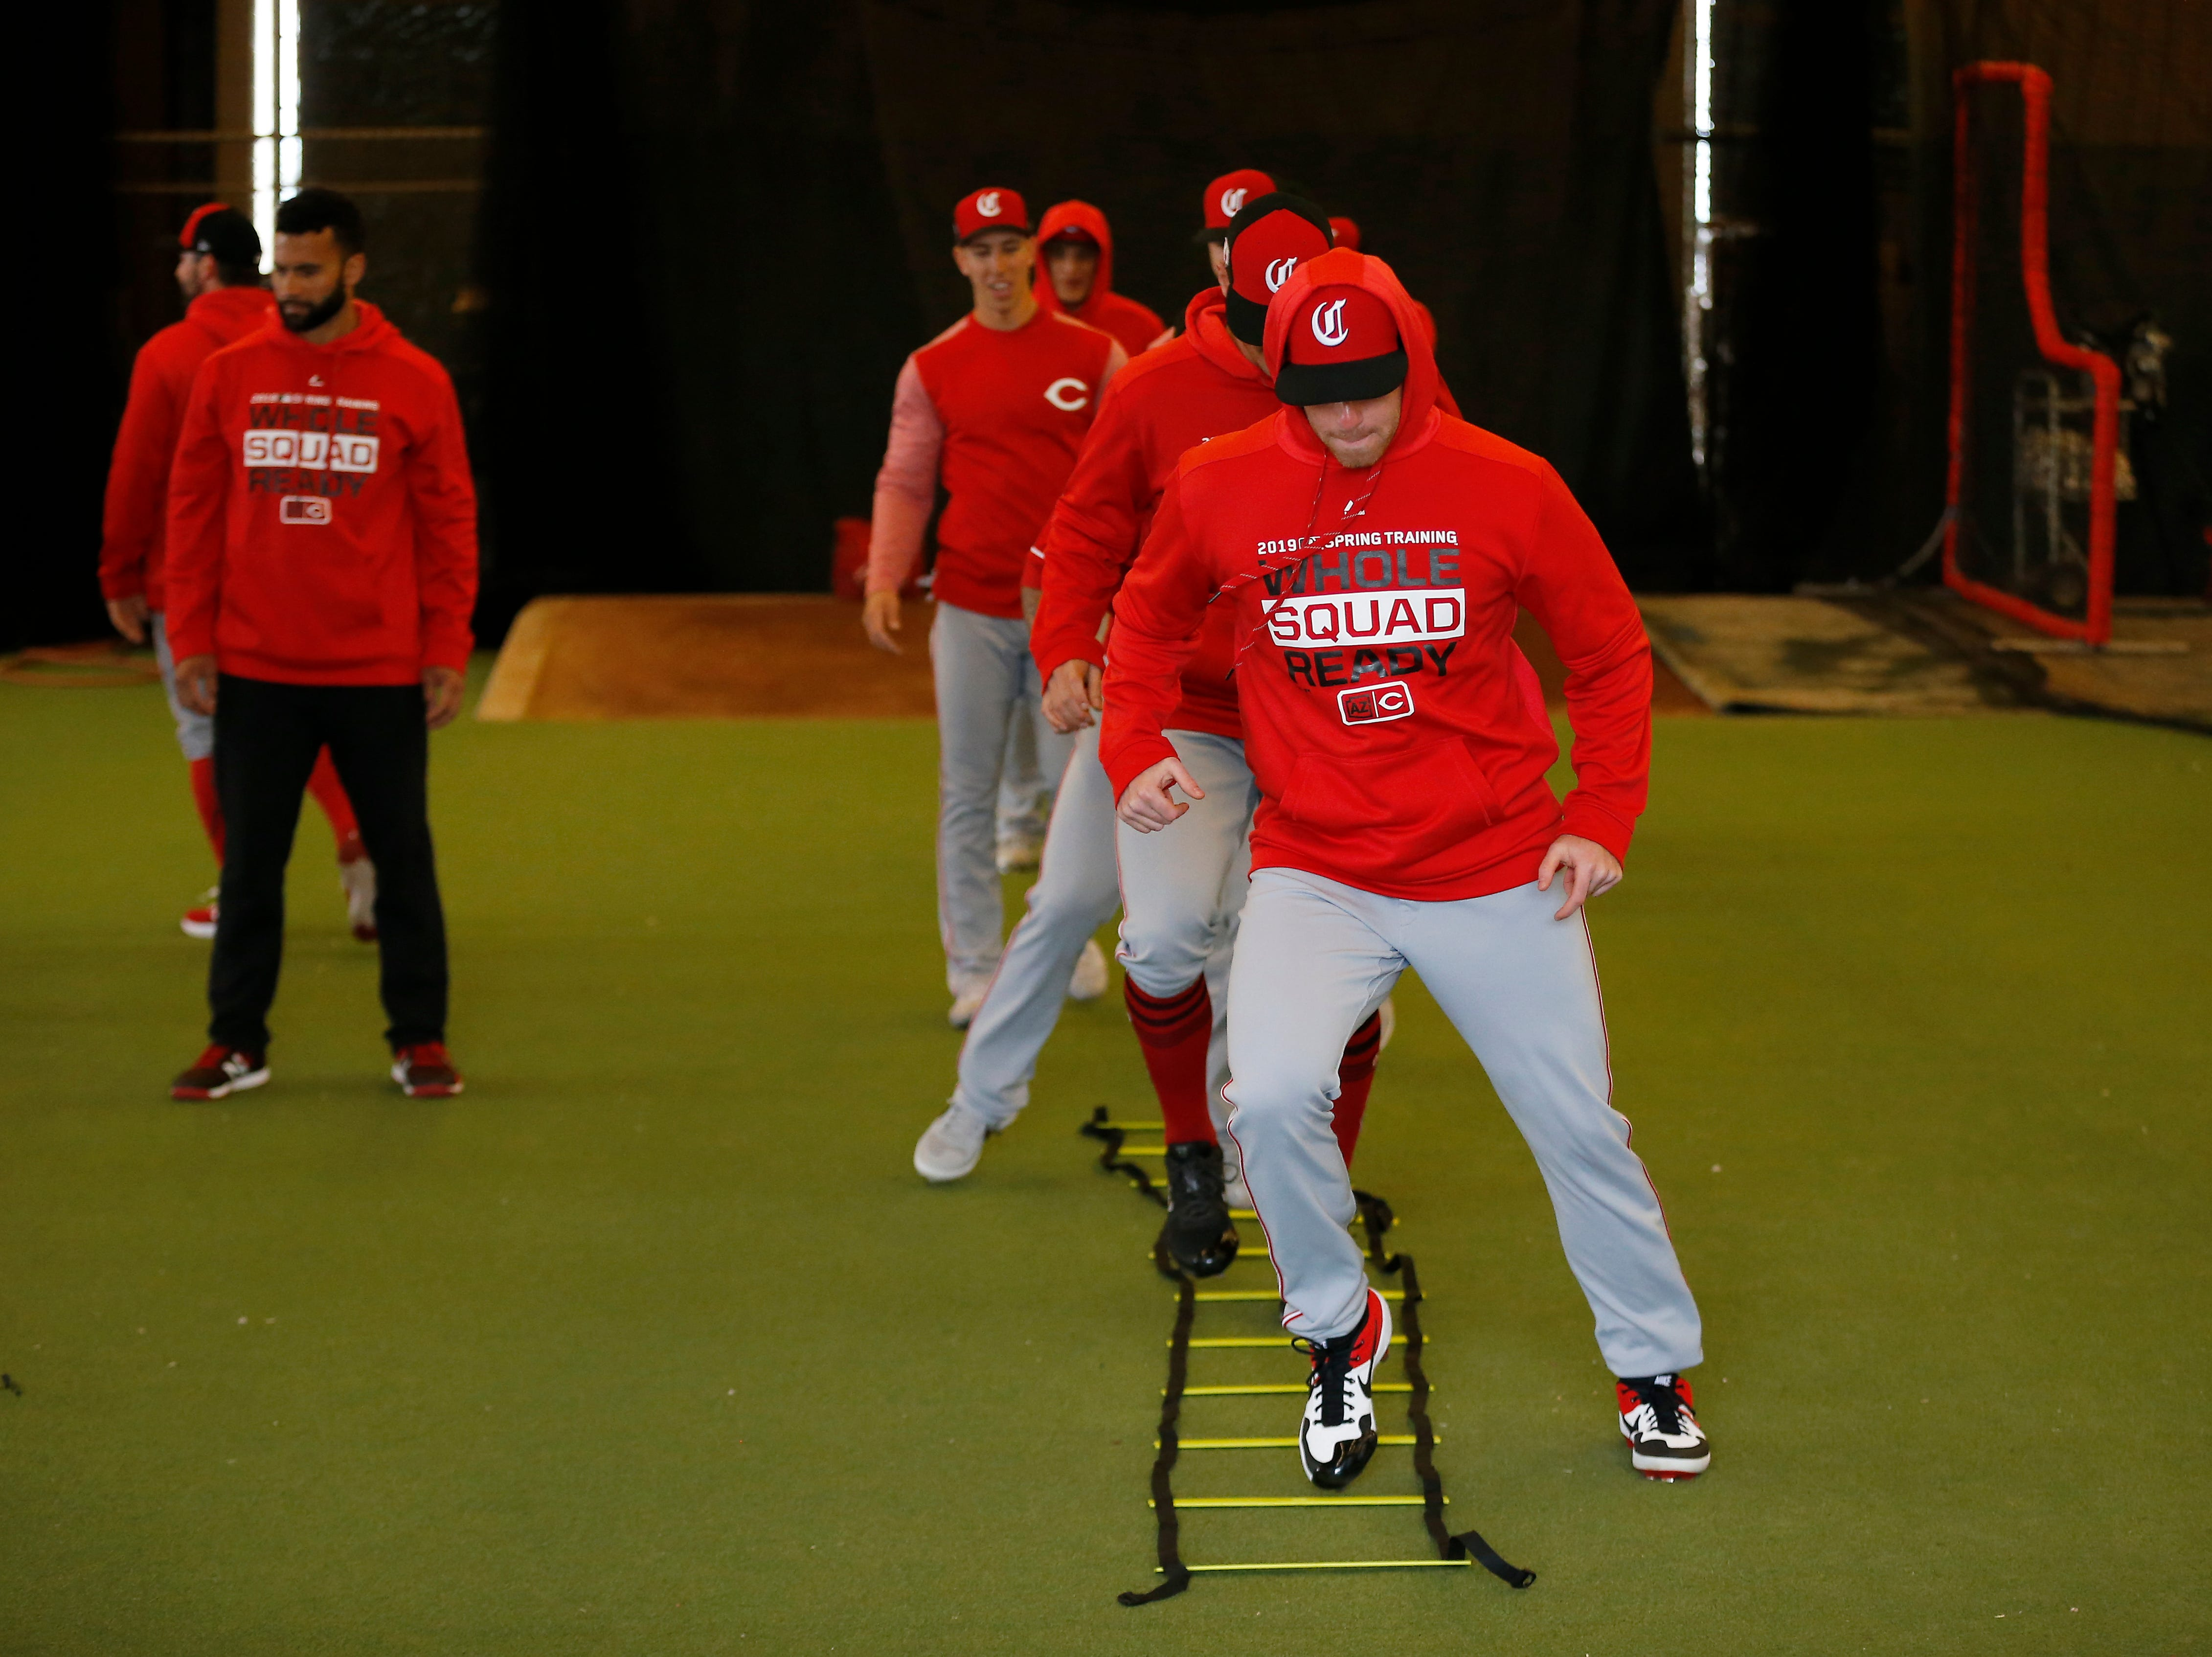 Pictures warm up through ladder drills at the Cincinnati Reds spring training facility in Goodyear, Ariz., on Thursday, Feb. 21, 2019.